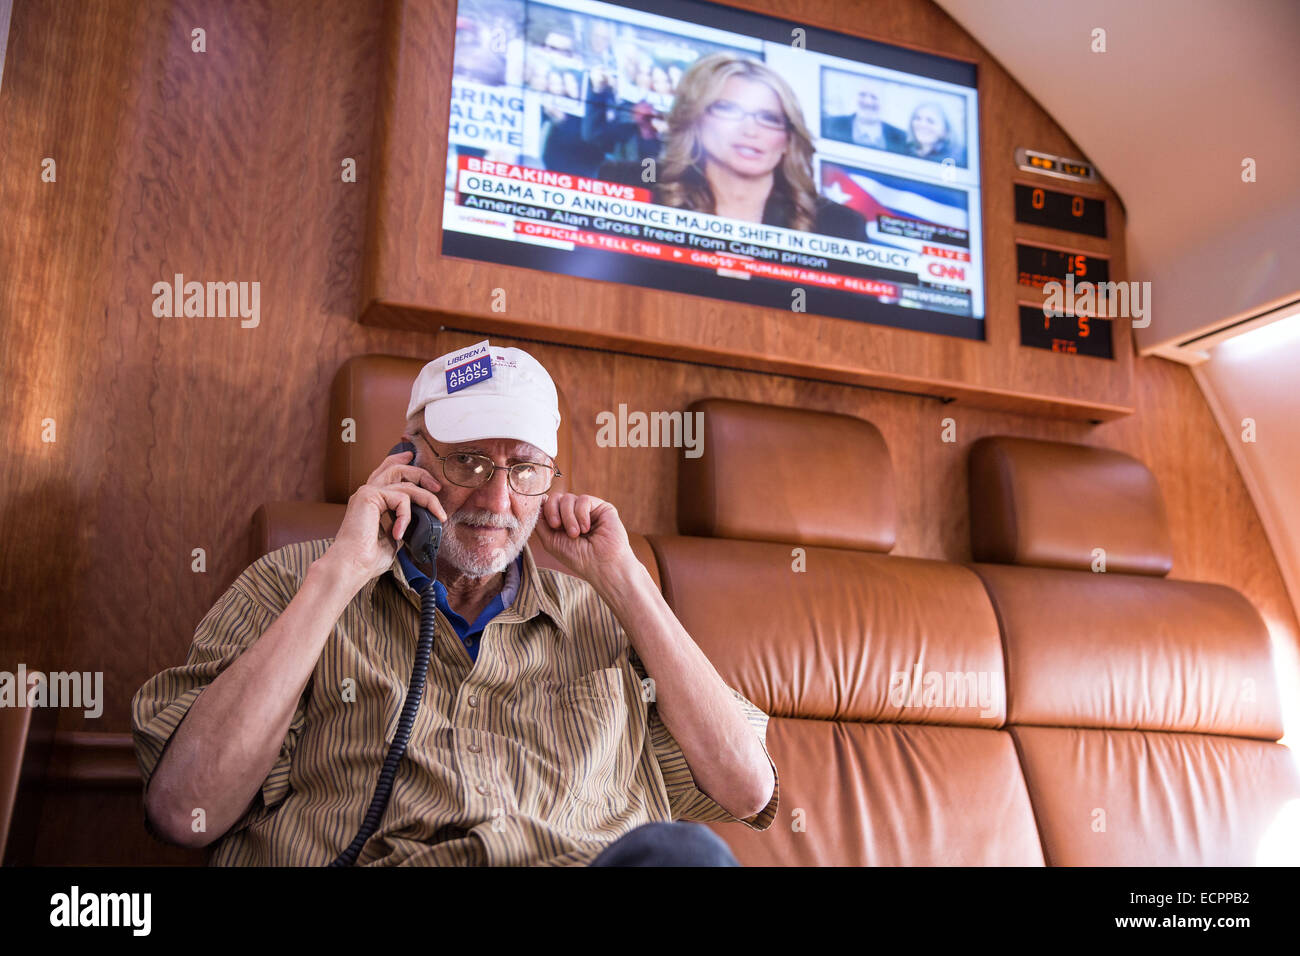 Maryland, USA. 17th Dec, 2014. Photo provided by the White House shows U.S. contractor Alan Gross talking on the - Stock Image